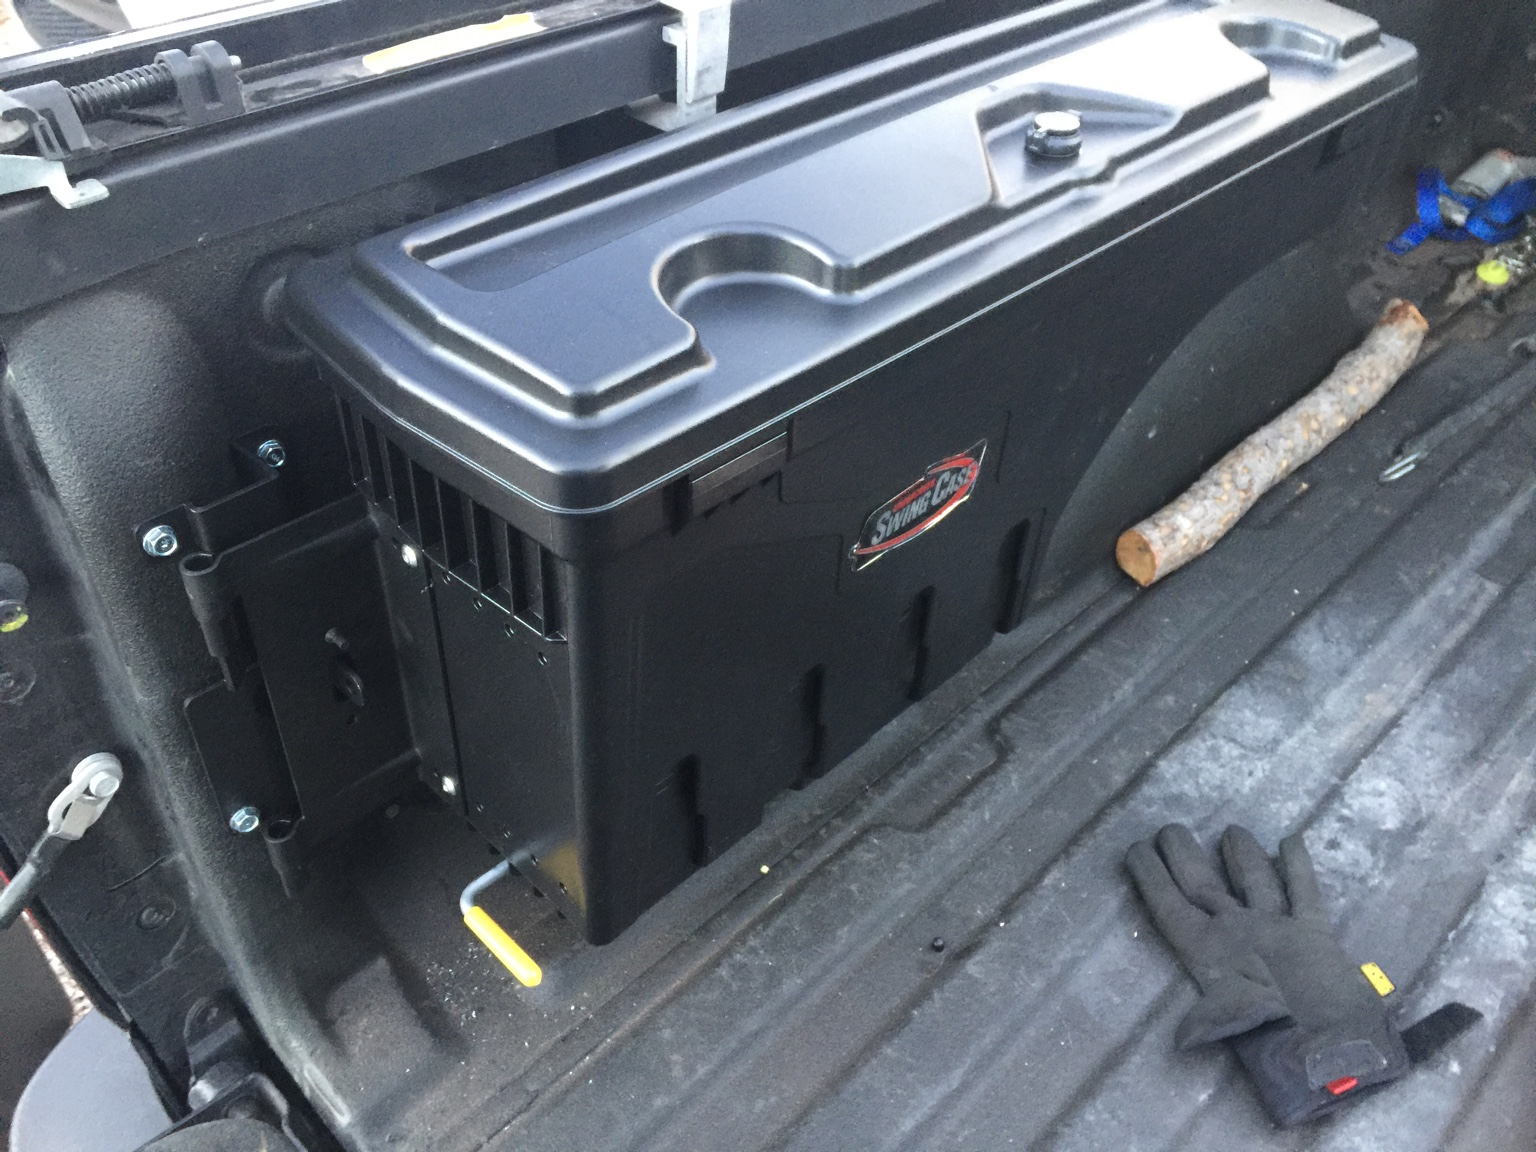 Duramax Def Delete >> What did you do to your Sierra/Silvy today? - Page 3157 - Chevy and GMC Duramax Diesel Forum